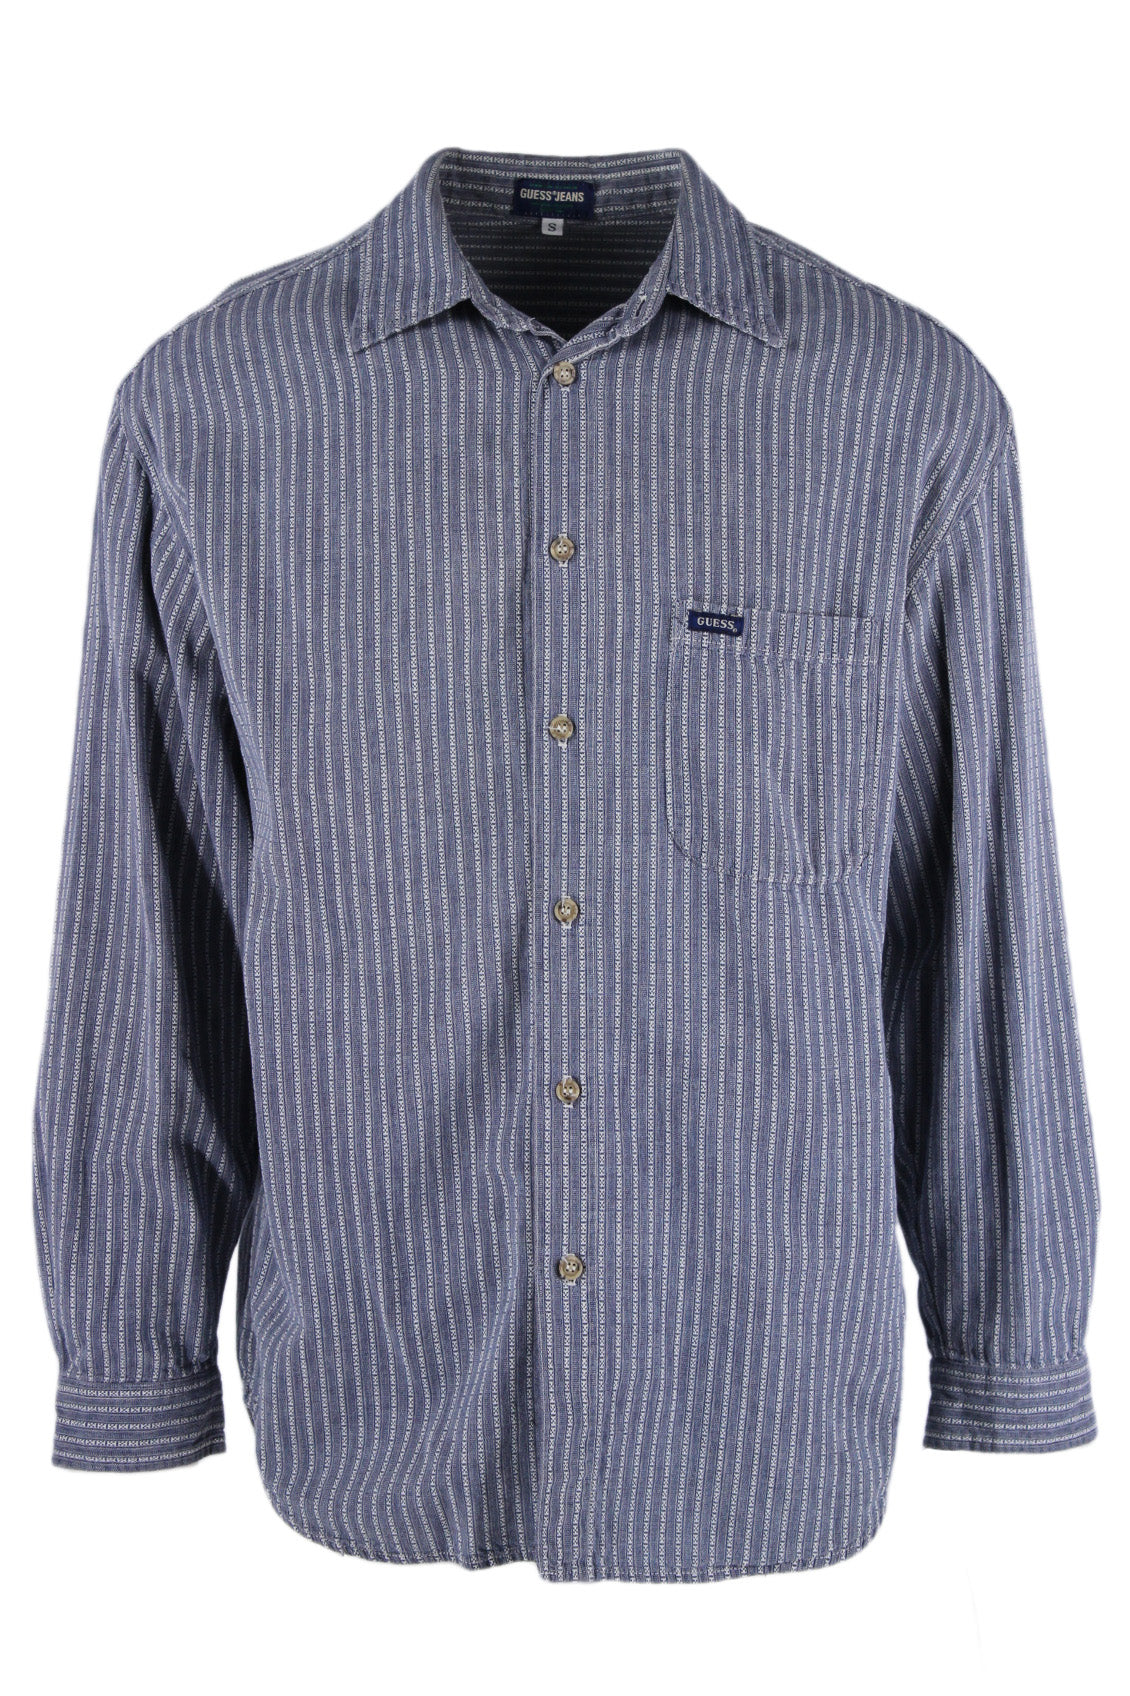 guess jeans blue/white vertical stripe button up long sleeve shirt. features 'guess' logo tag on left breast pocket.